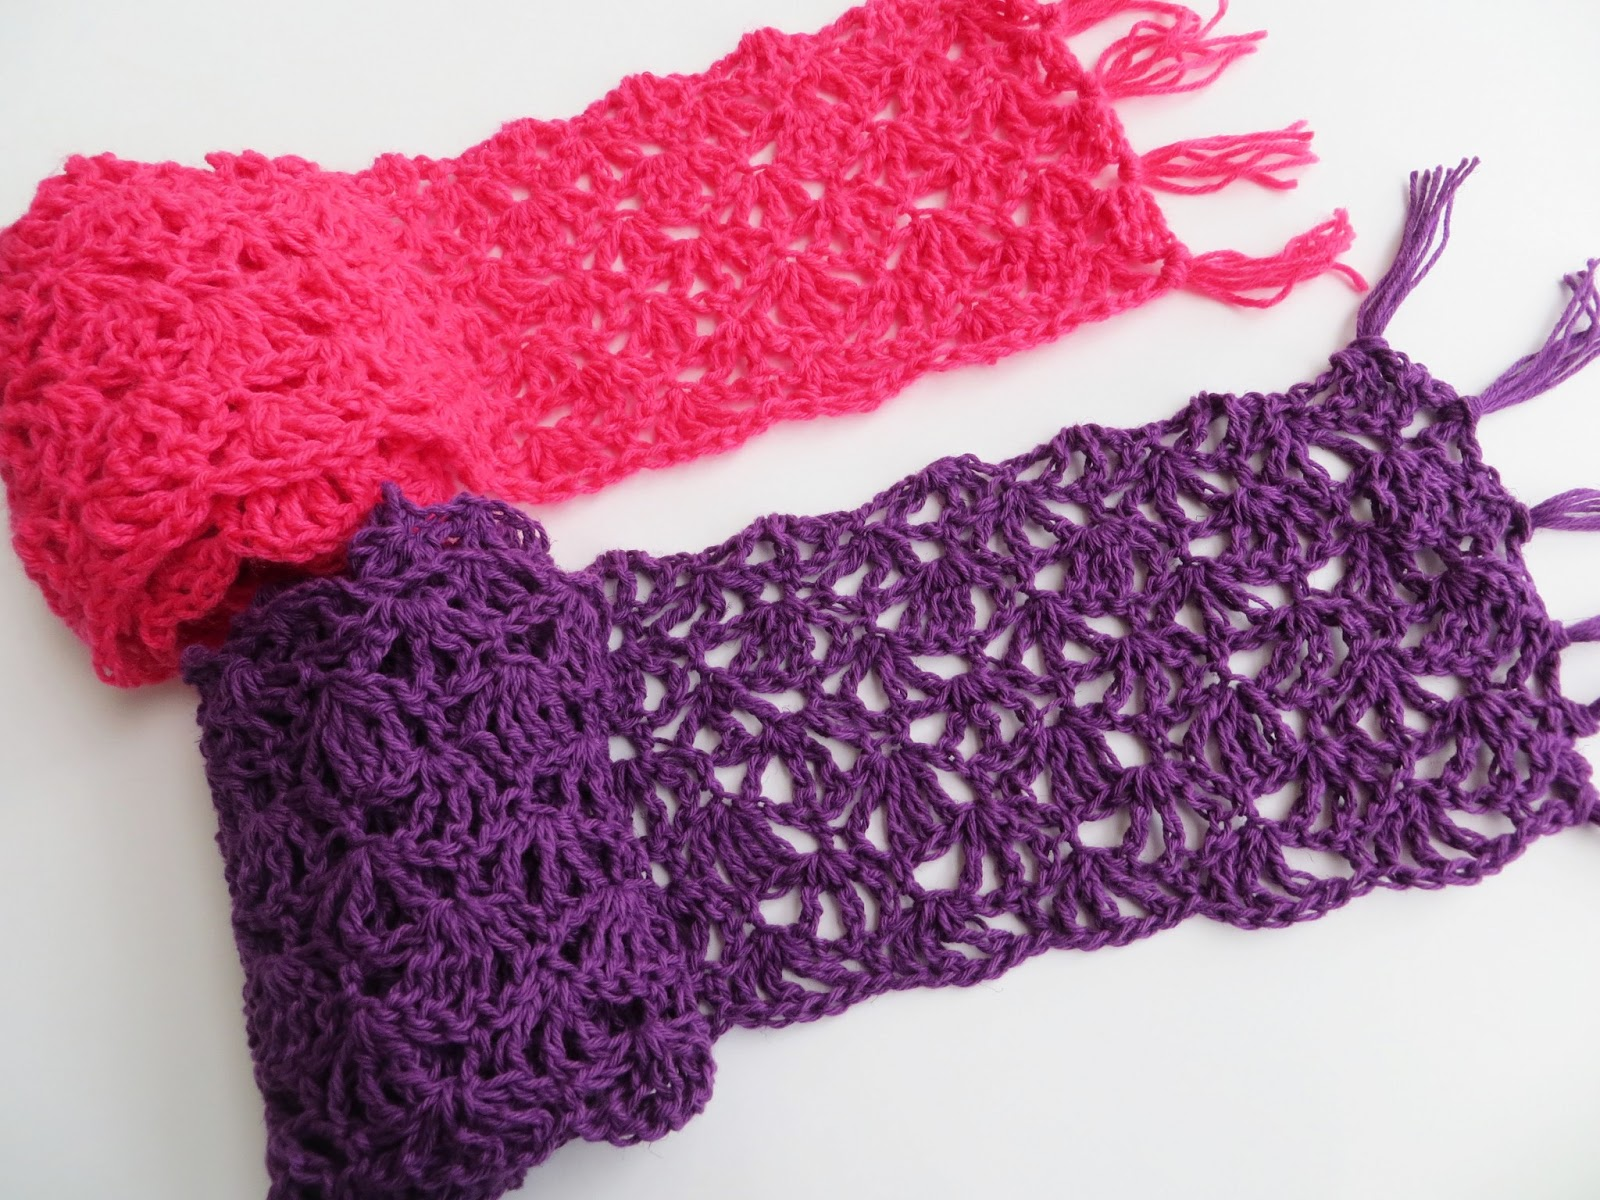 Free Printable Crochet Patterns : For the Love of Crochet Along: Alana Lacy Scarf, Free Crochet Pattern